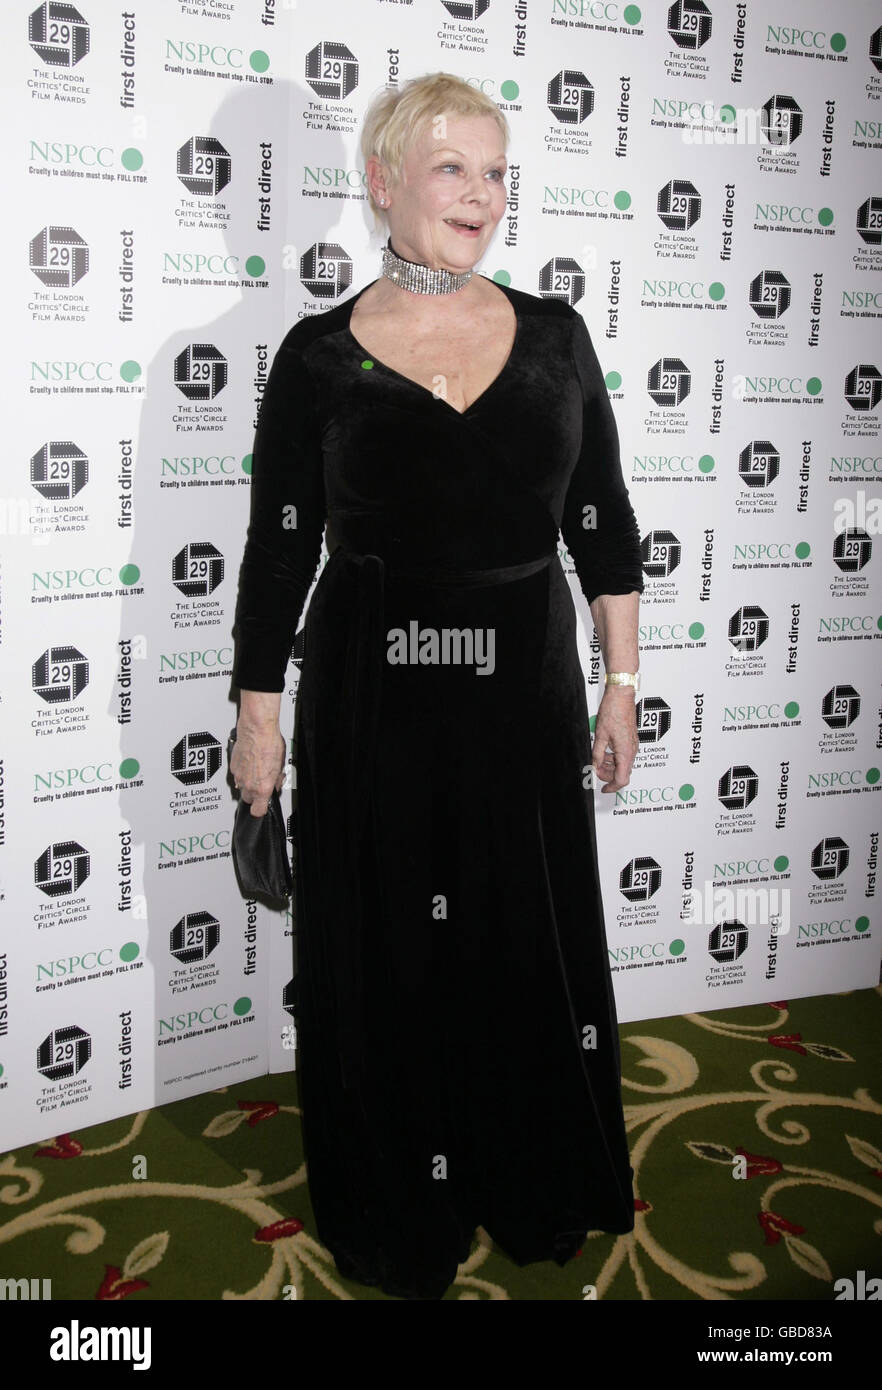 Dame Judi Dench arriving for The London Critics' Circle Film Awards, at Grosvenor House Hotel in central London. Stock Photo